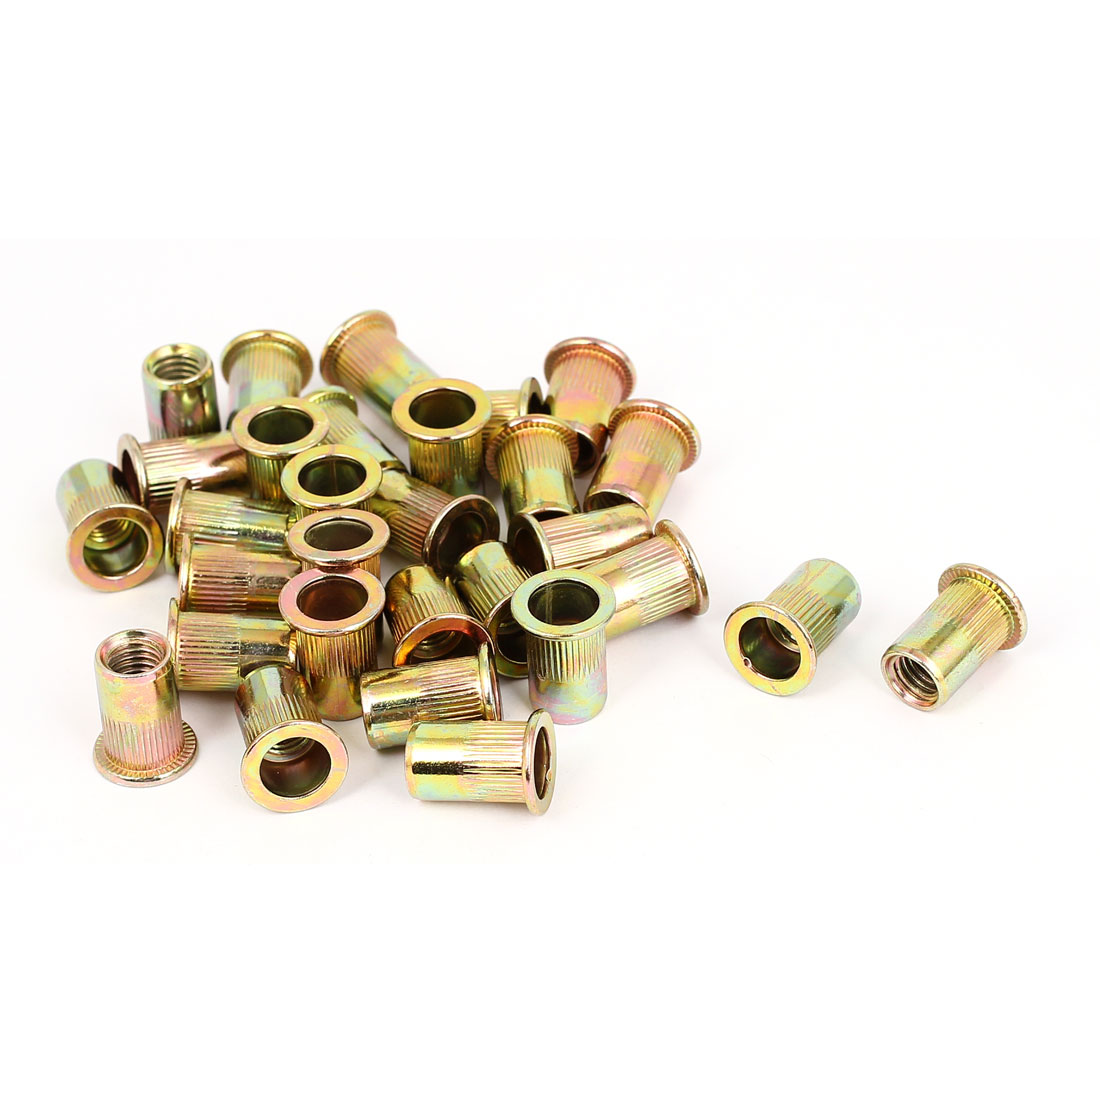 M8x18mm Countersunk Head Ribbed Body Blind Nuts Insert Nutserts 30pcs